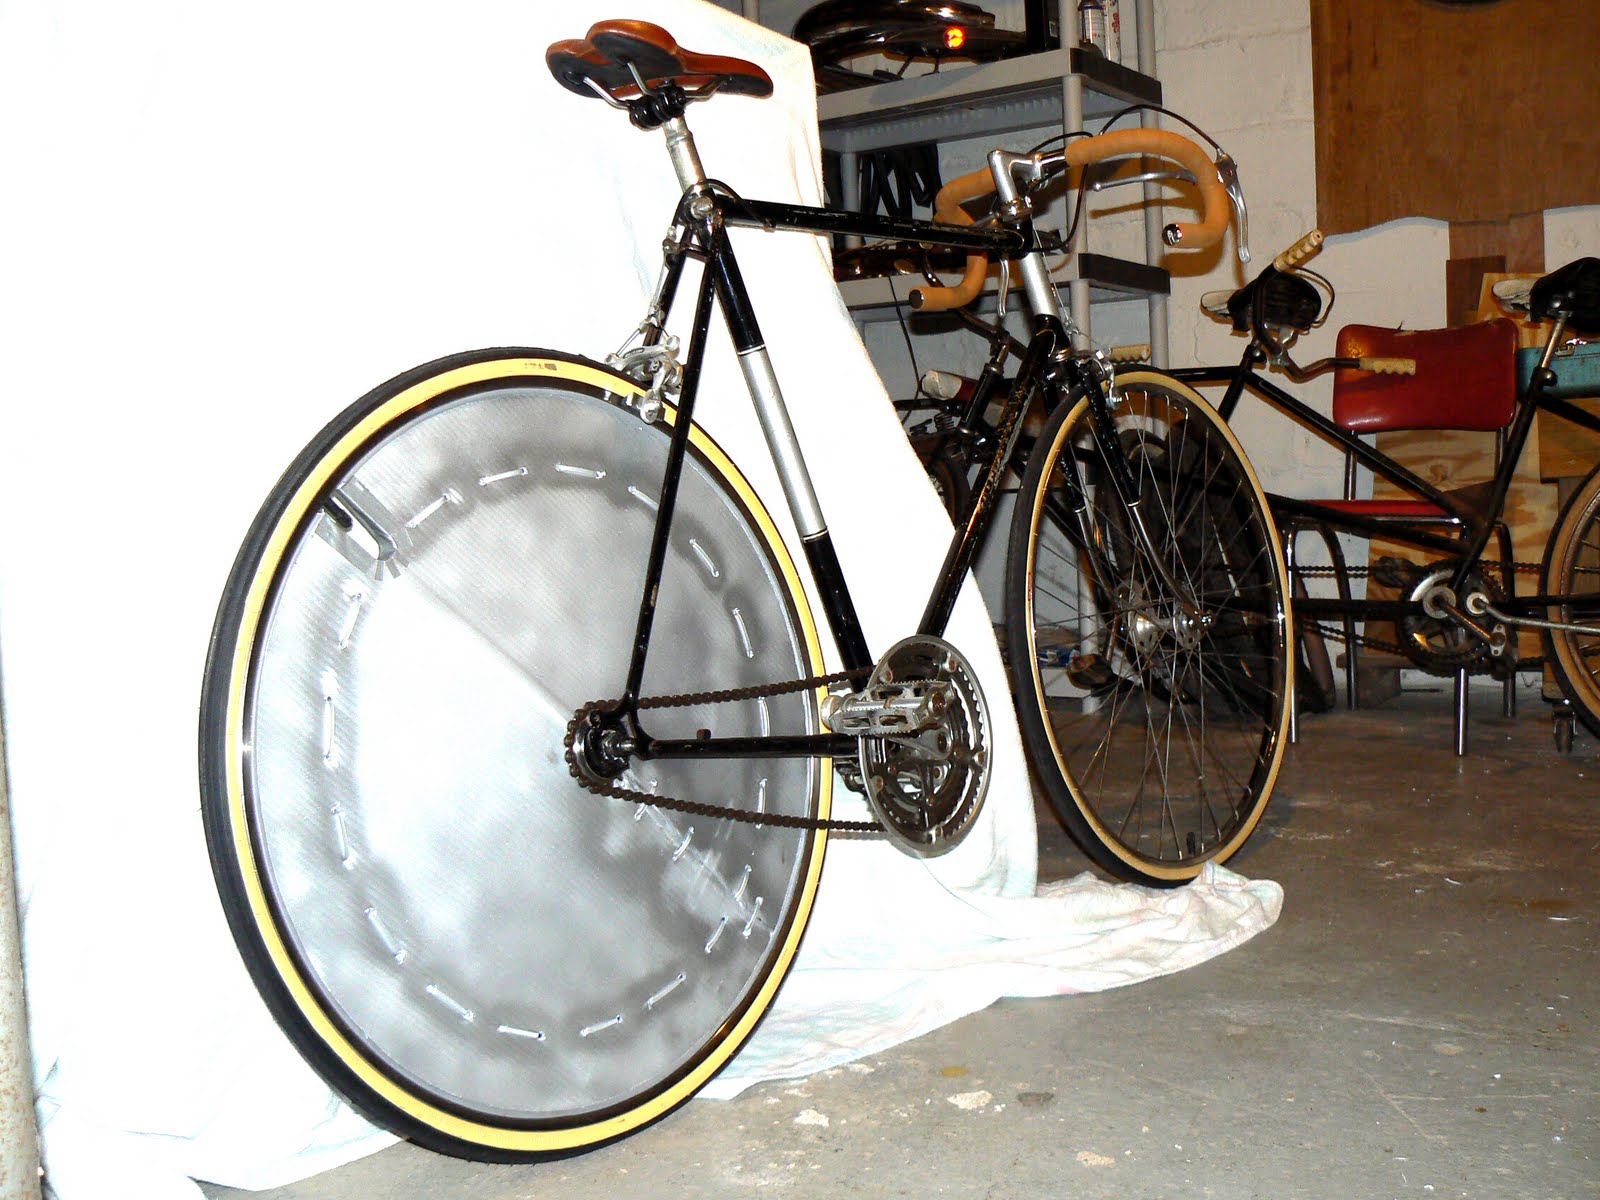 DIY 4 Wheel Bike http://syracusebicycleworks.blogspot.com/2010/11/homemade-disc-wheels.html